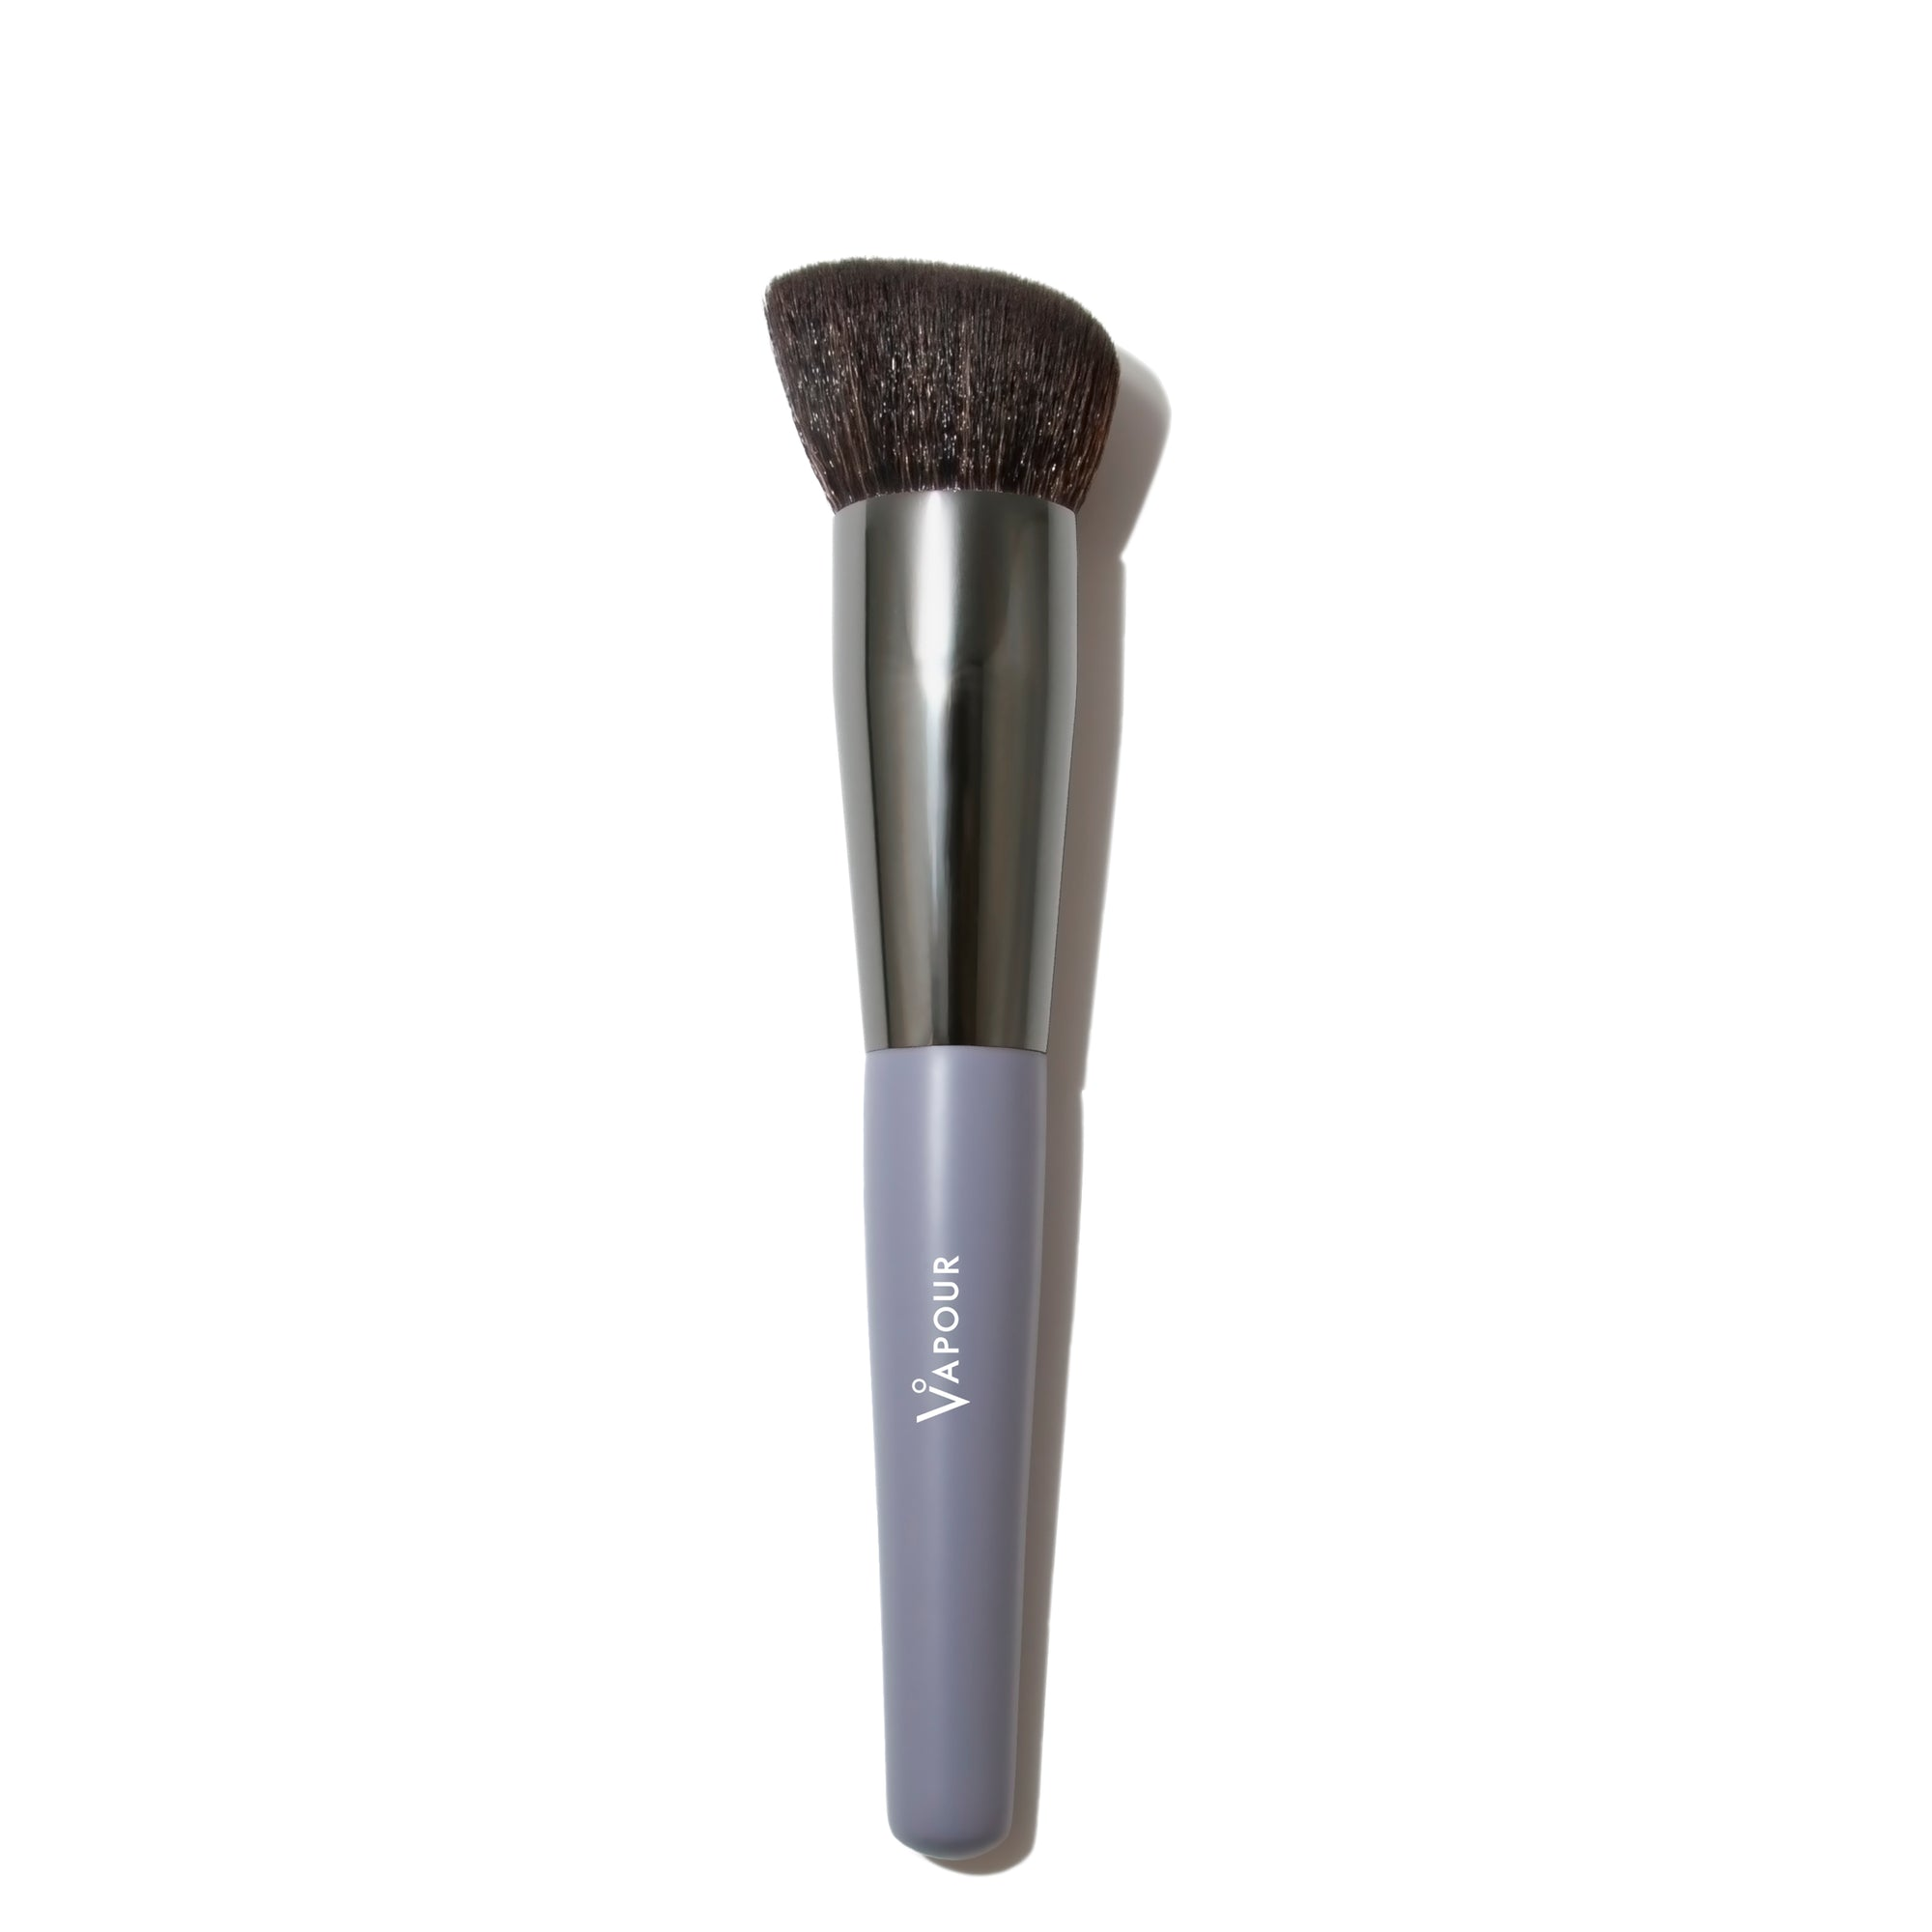 Vapour Foundation Brush - AILLEA